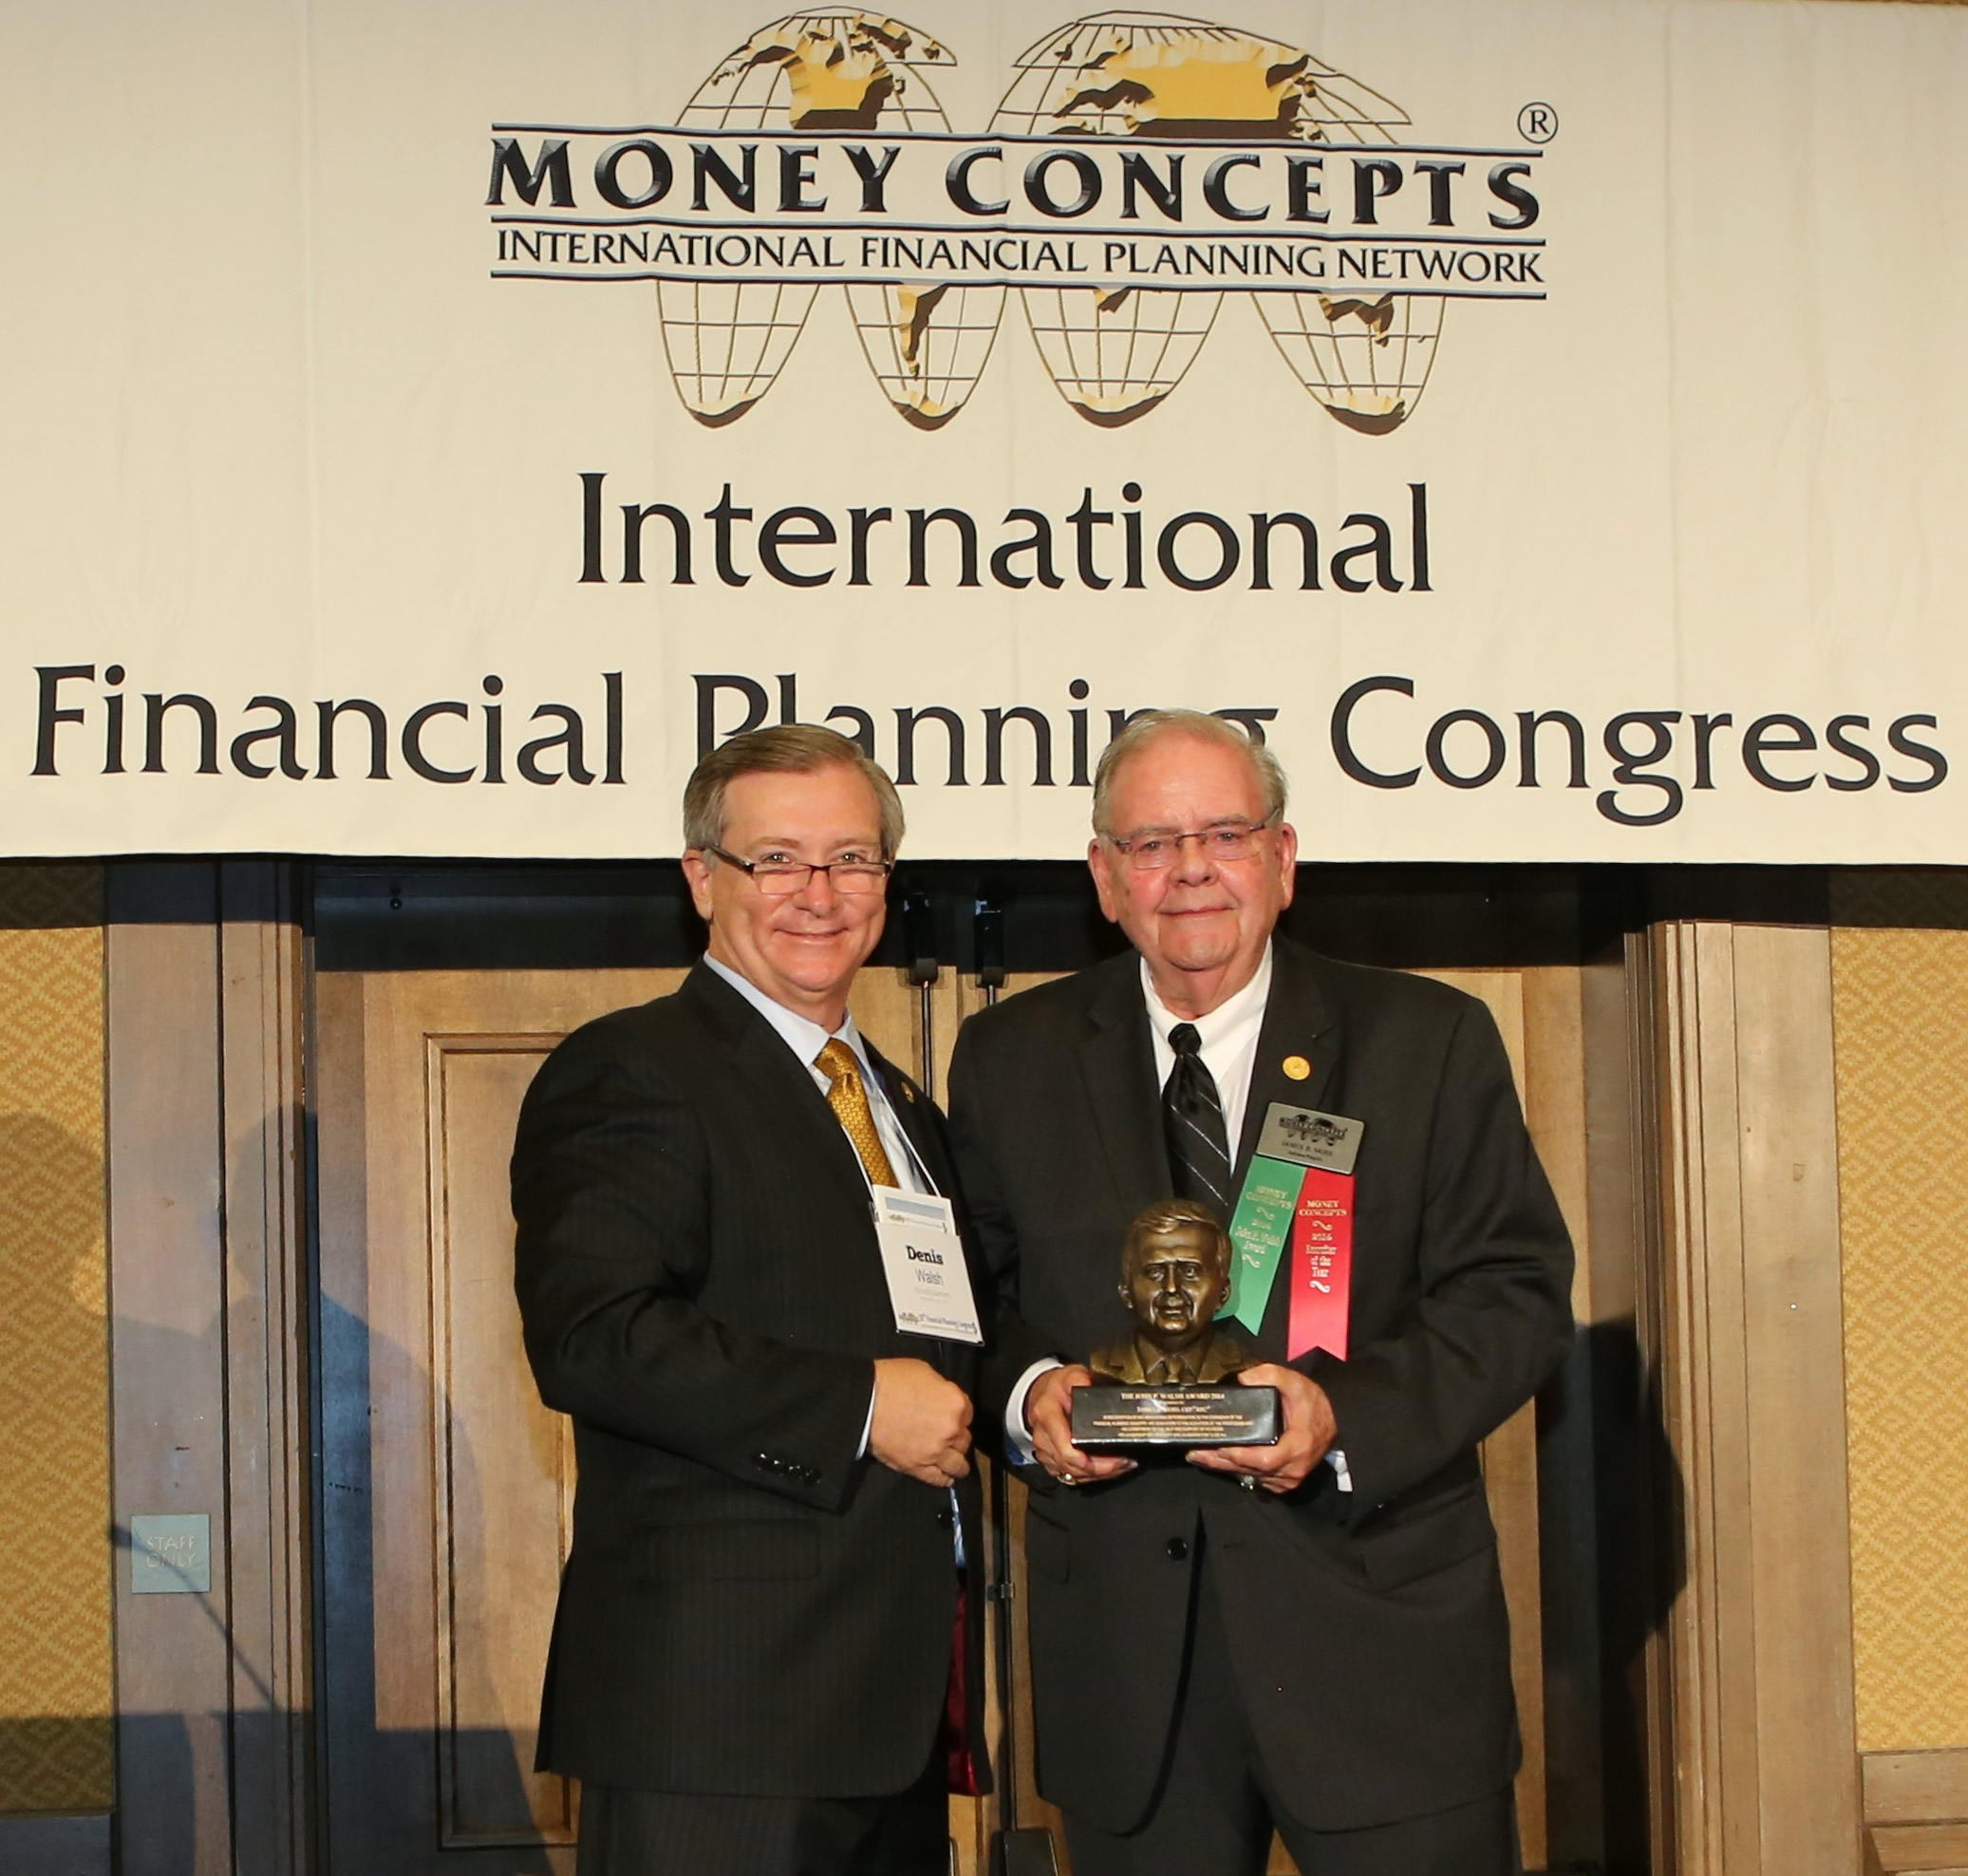 Money Concepts Celebrates Its 35th Anniversary As An